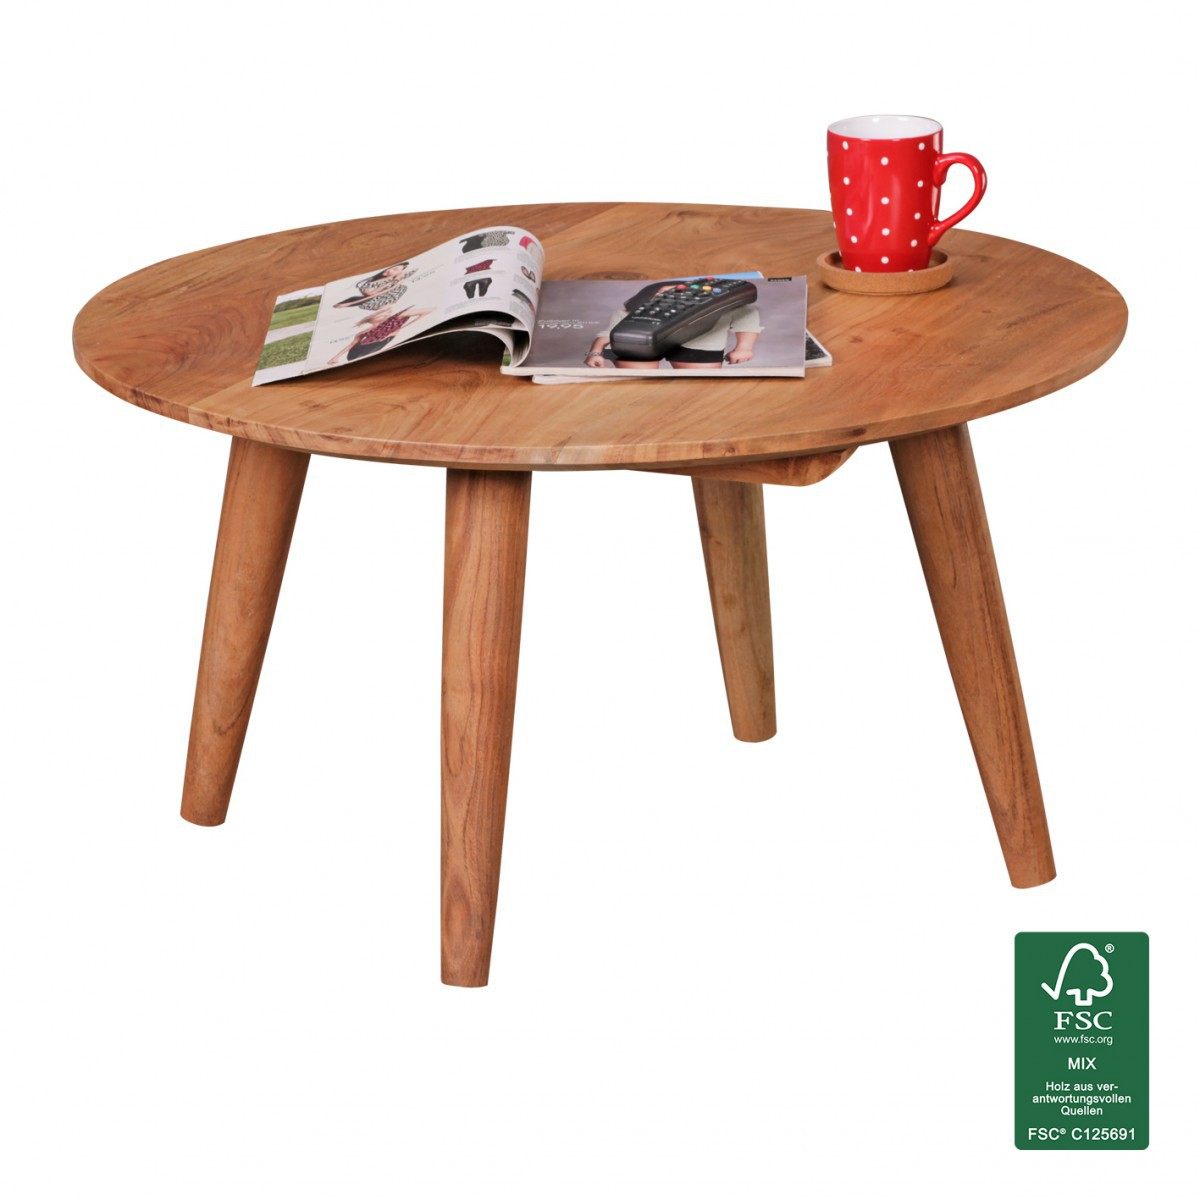 Finebuy table basse en bois massif acacia table basse - Table ronde 110 cm ...